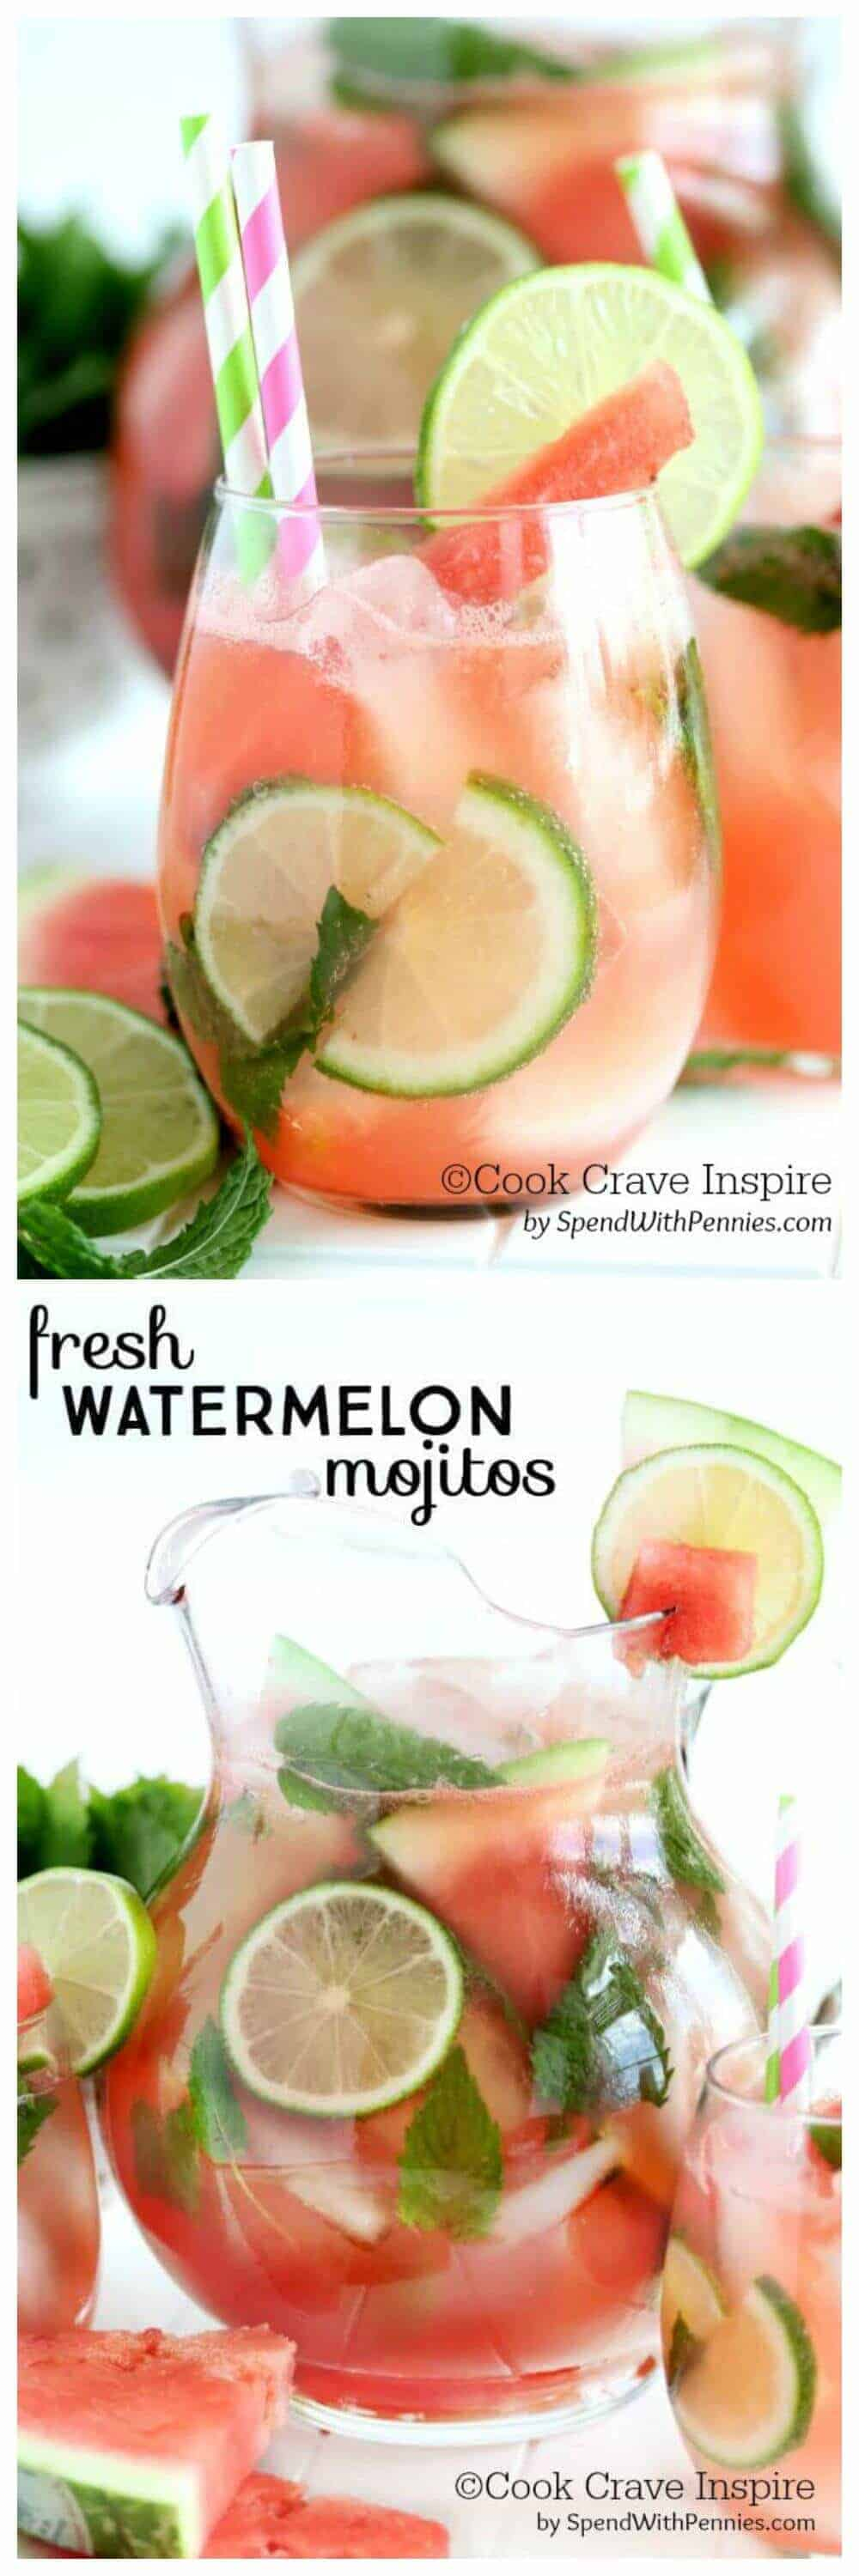 Fresh Watermelon Mojitos in a cup